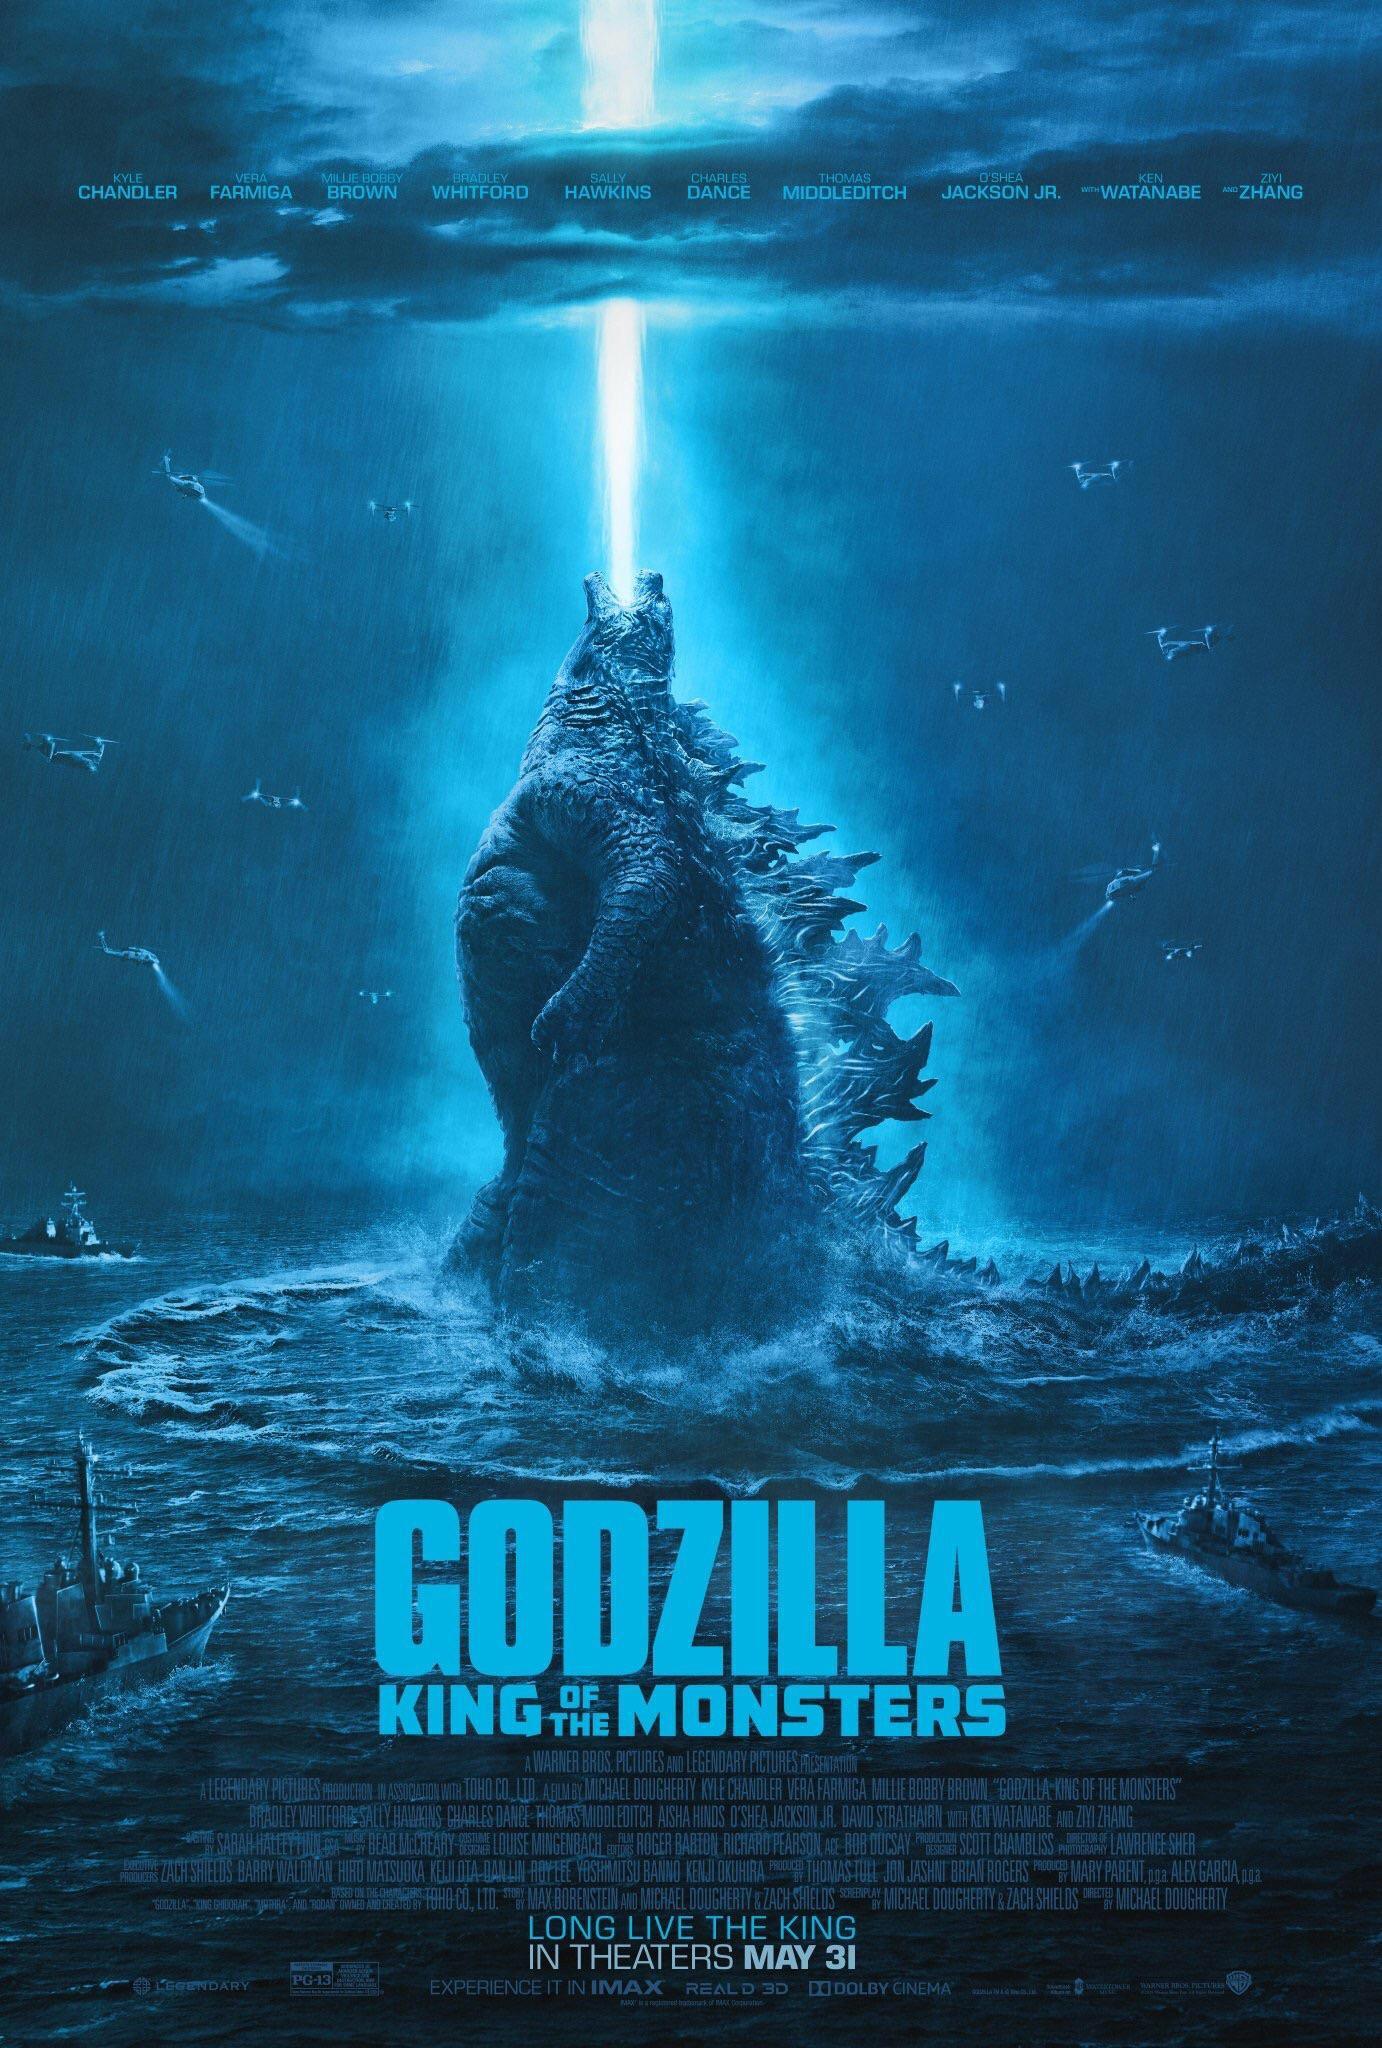 Godzilla-king-monsters-3d-3-D-movie-poster.JPG